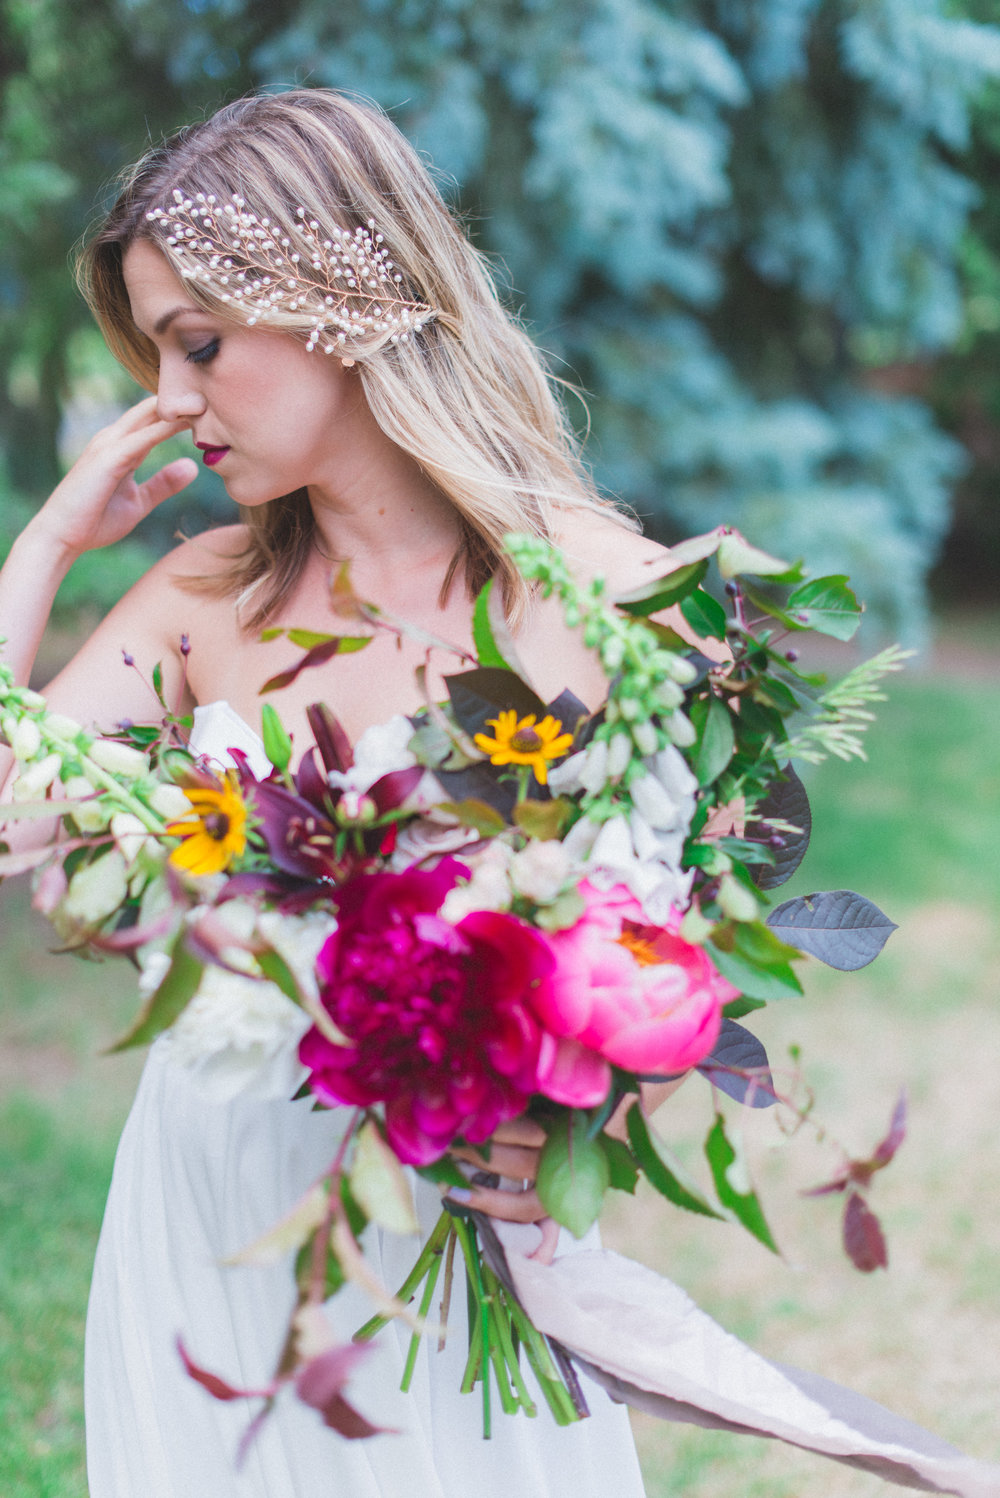 Toast Events Boho Picnic Elopement, Laura Kelly Photography. Presh Floral, The Handmade Bride